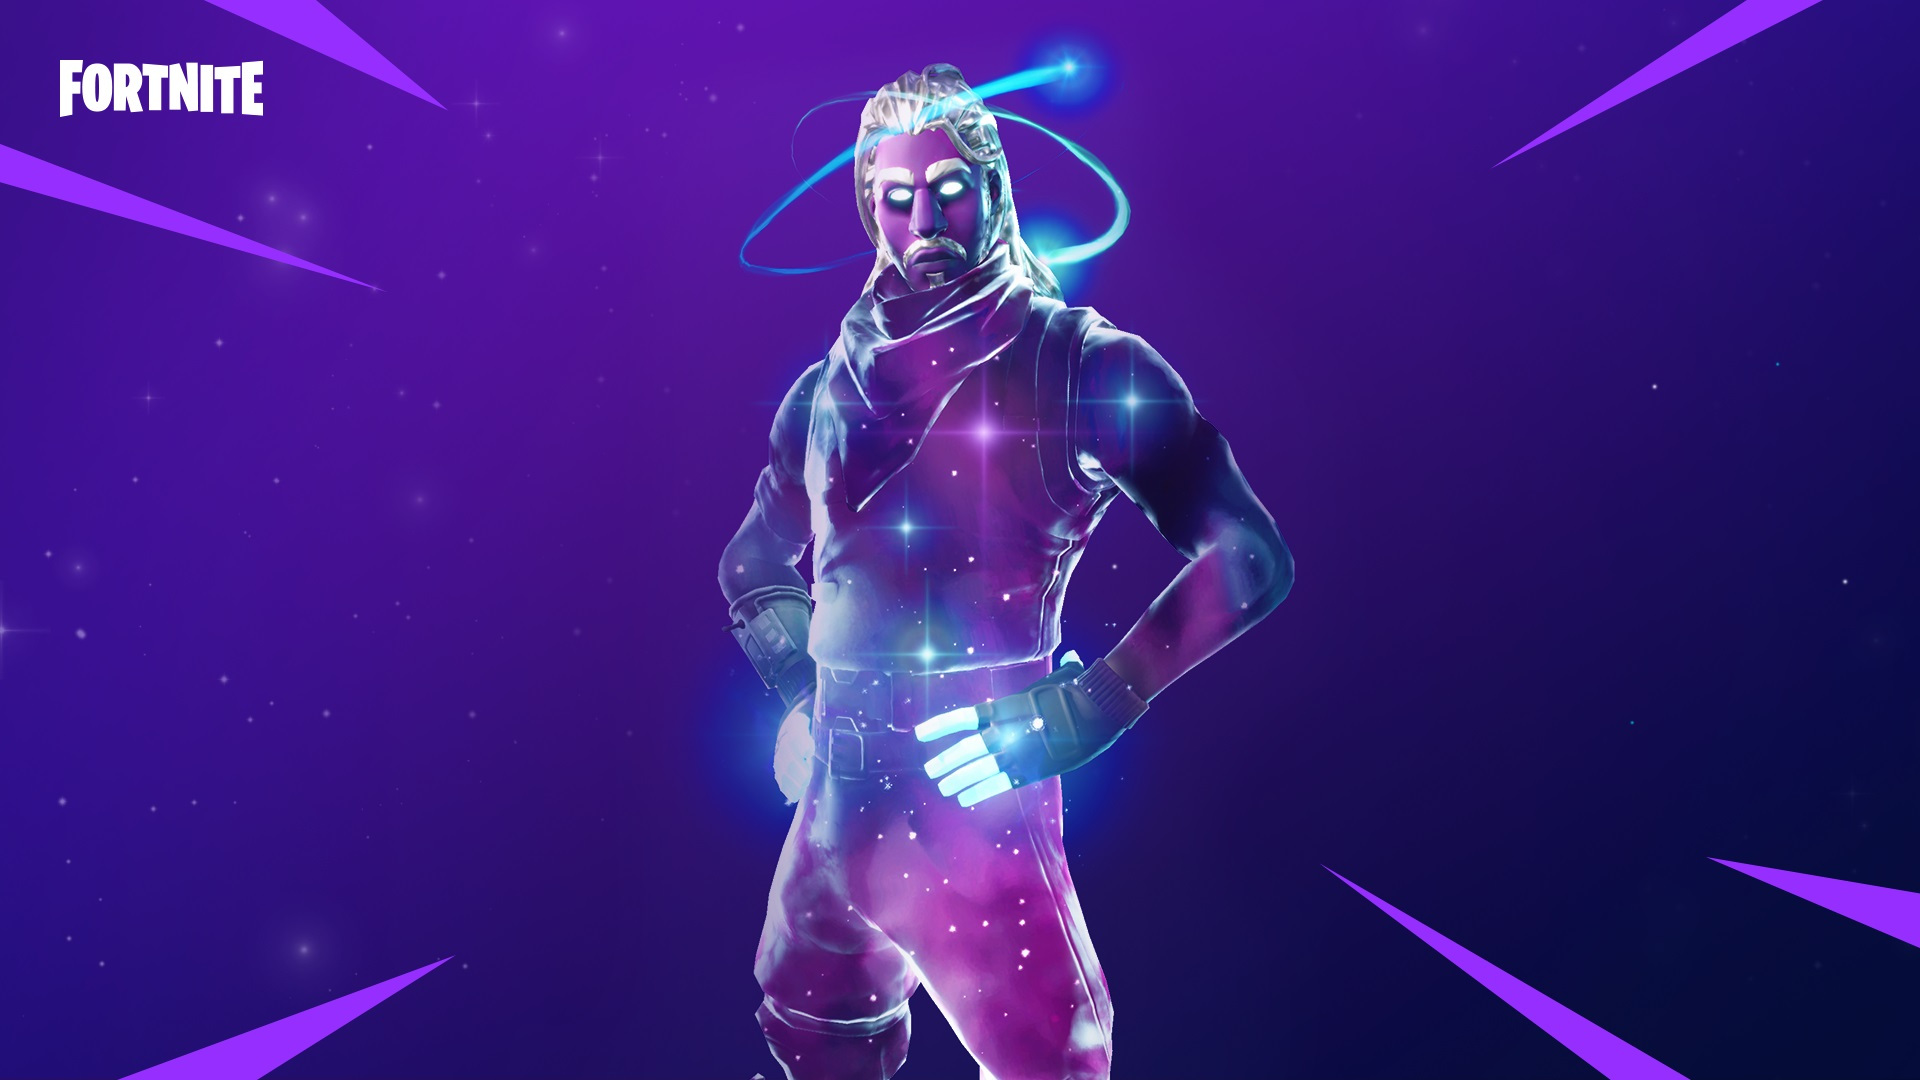 Fortnite players are using Galaxy Note 9 demo units to get 1920x1080